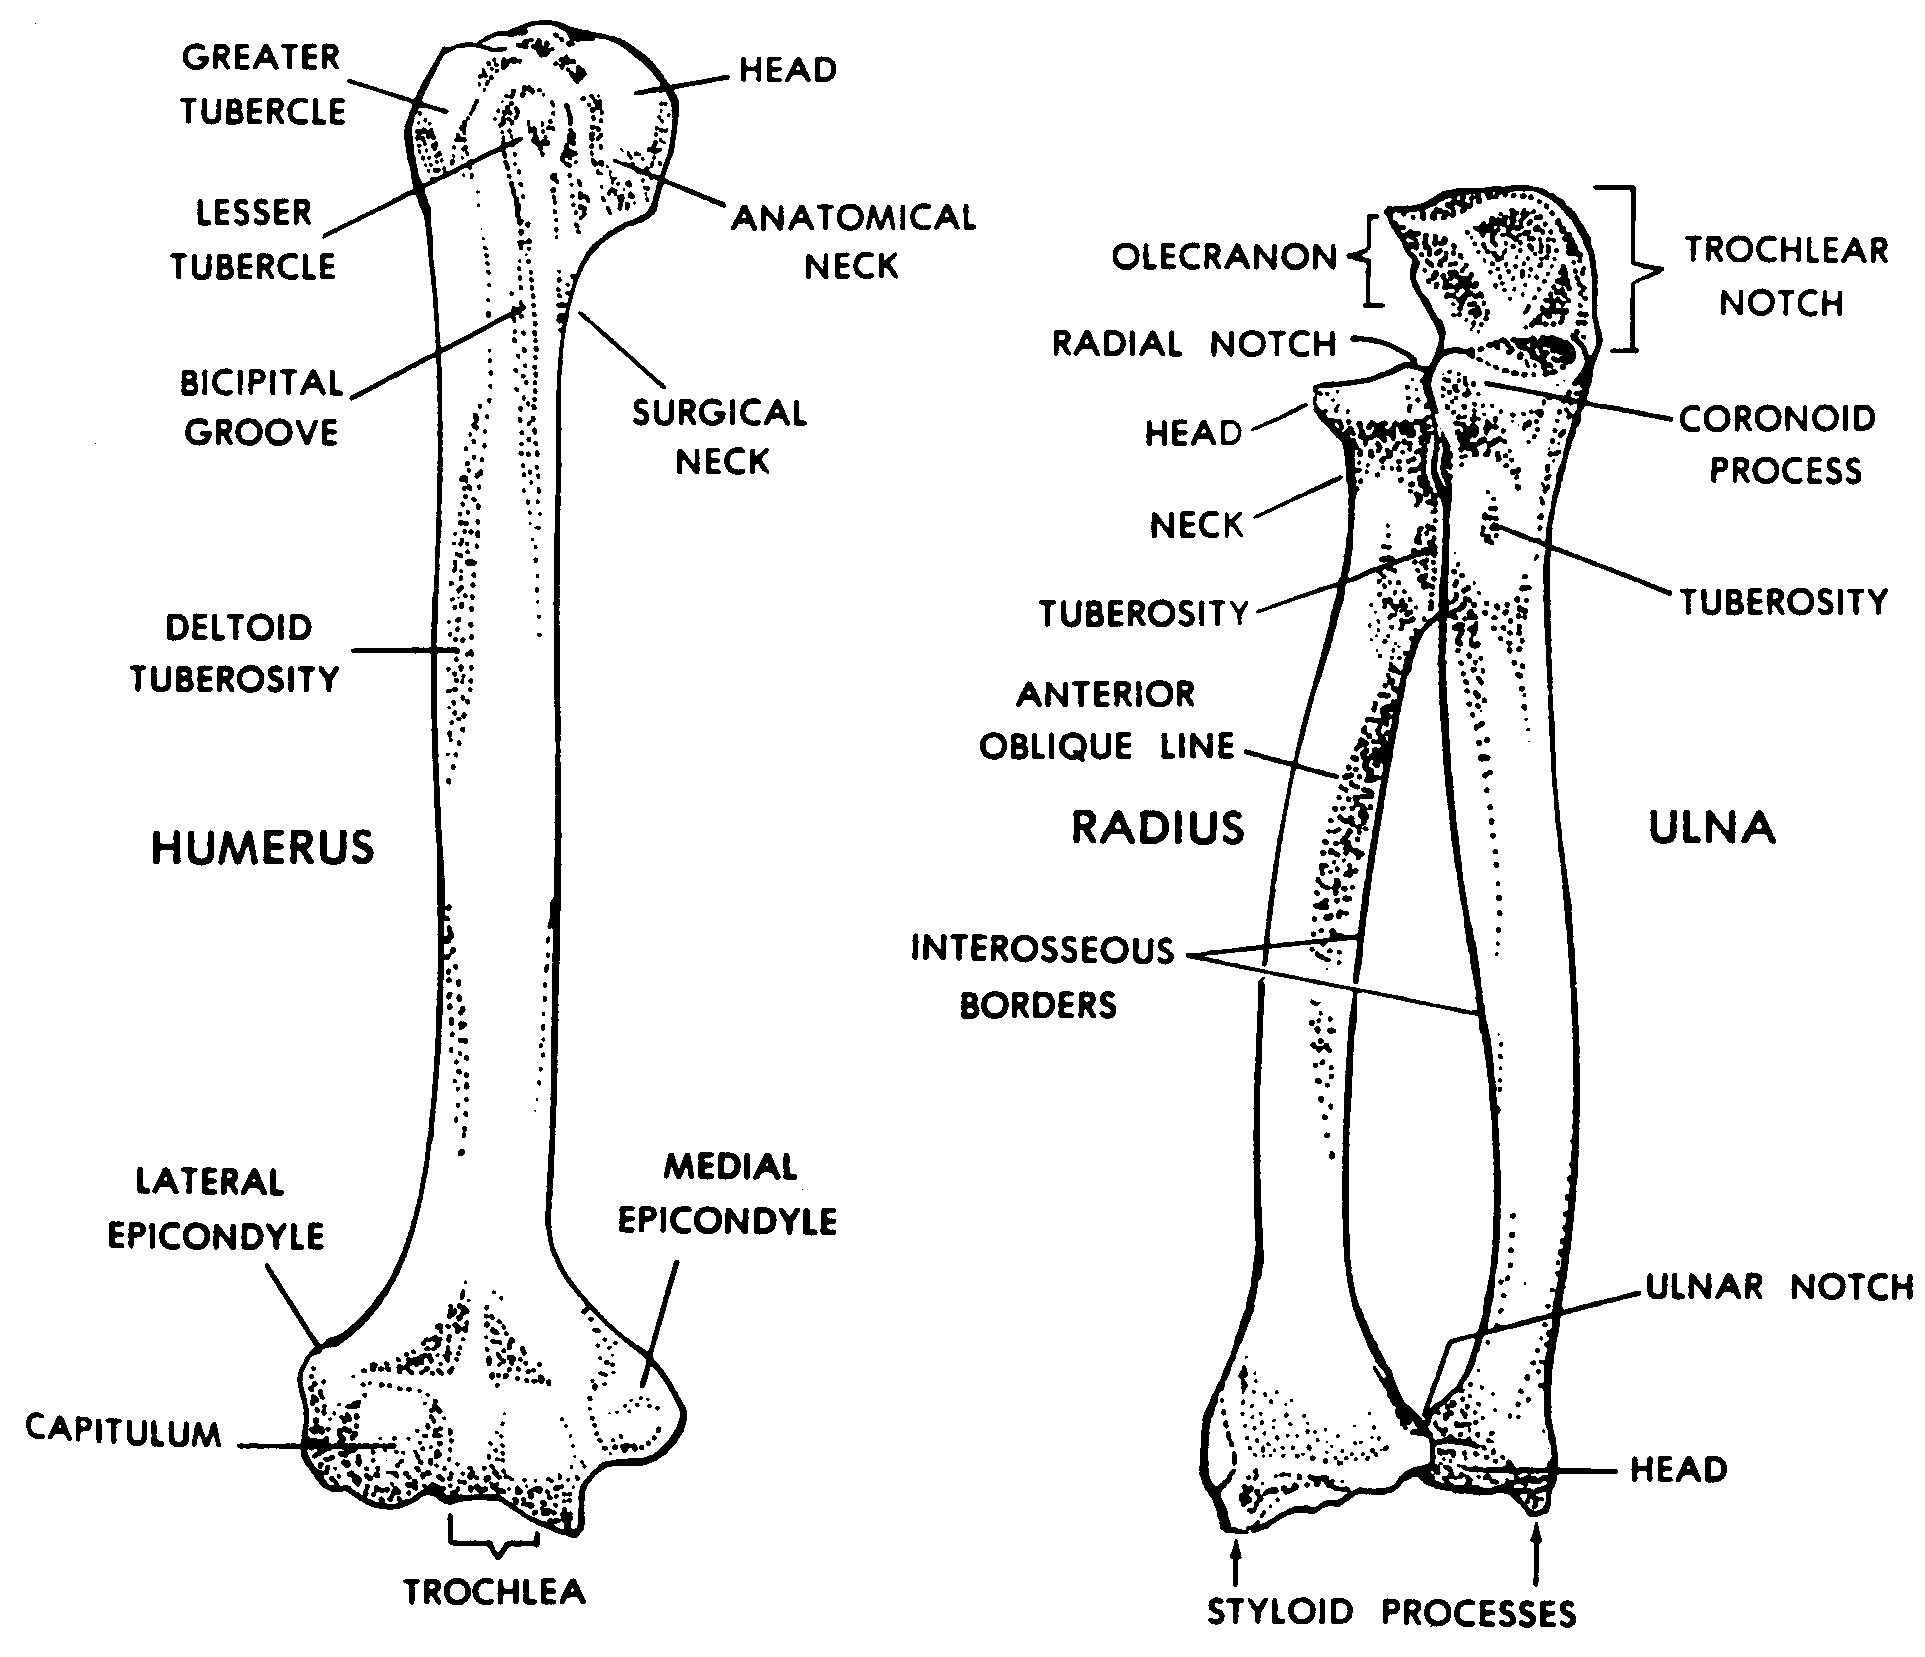 Anatomy Radius Ulna Choice Image - human body anatomy